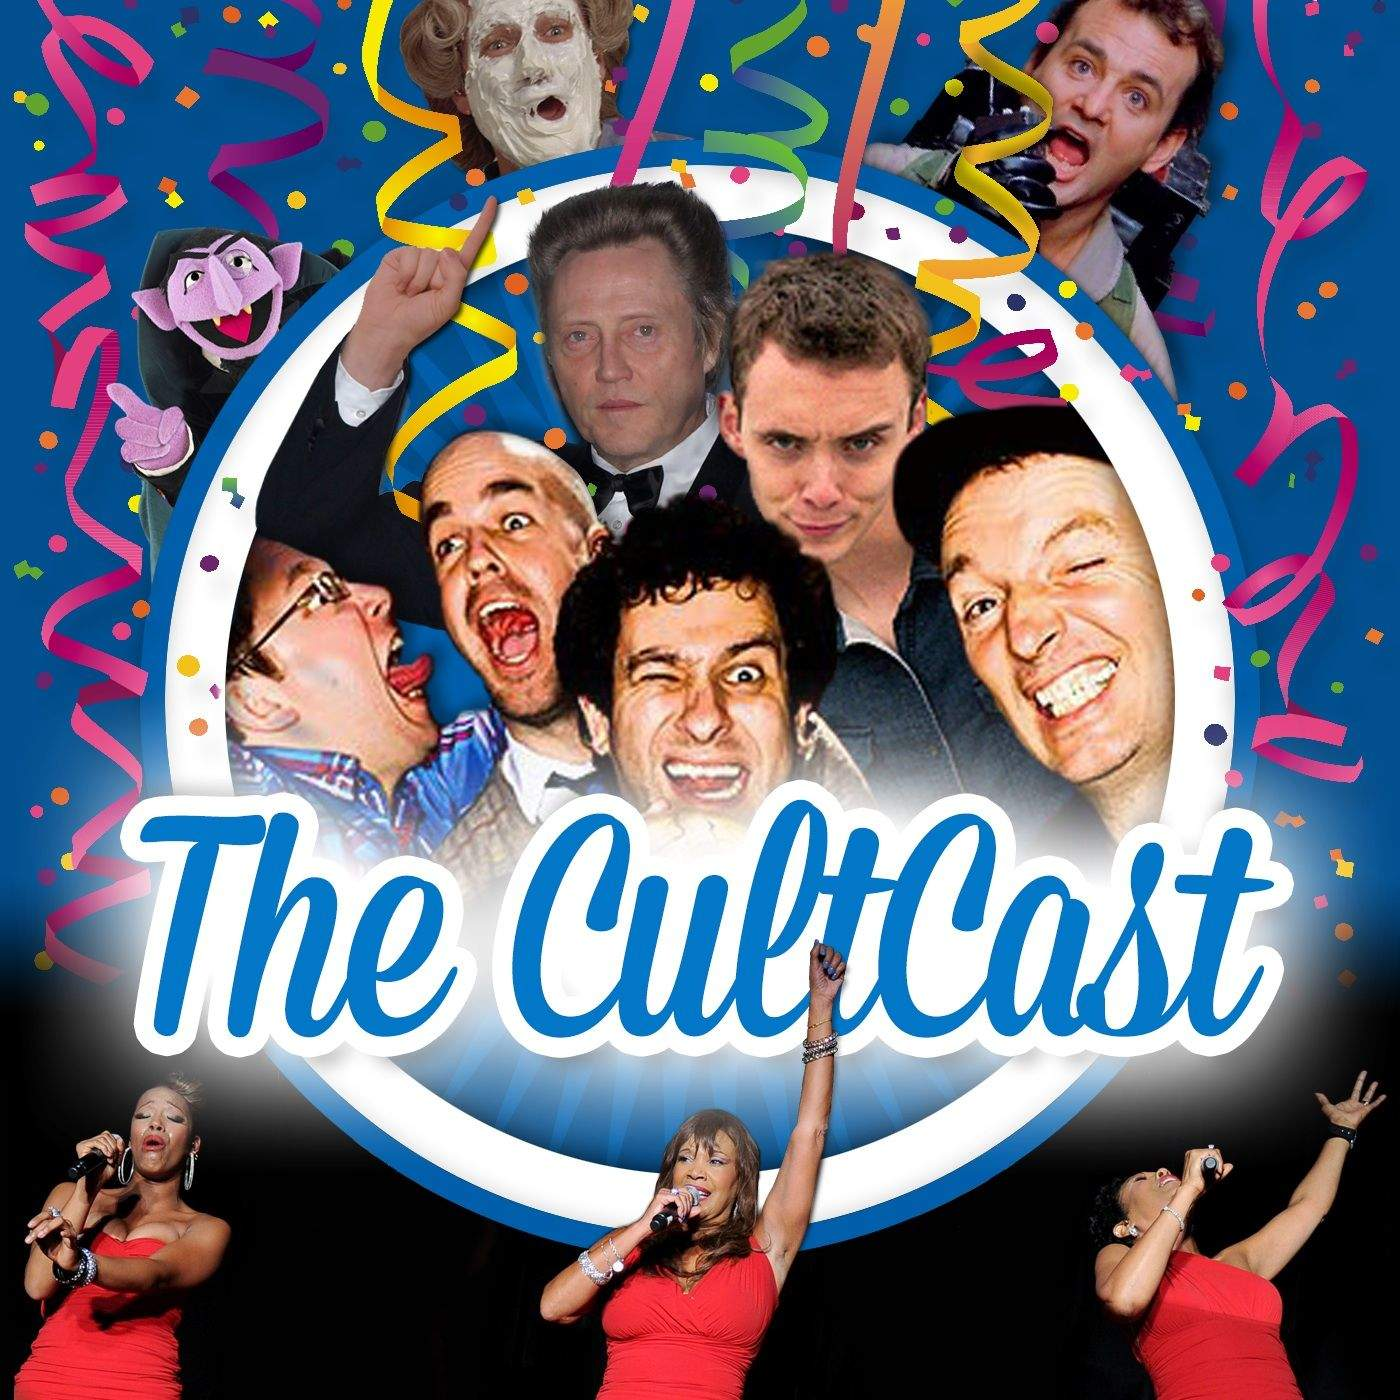 Cultcastparty